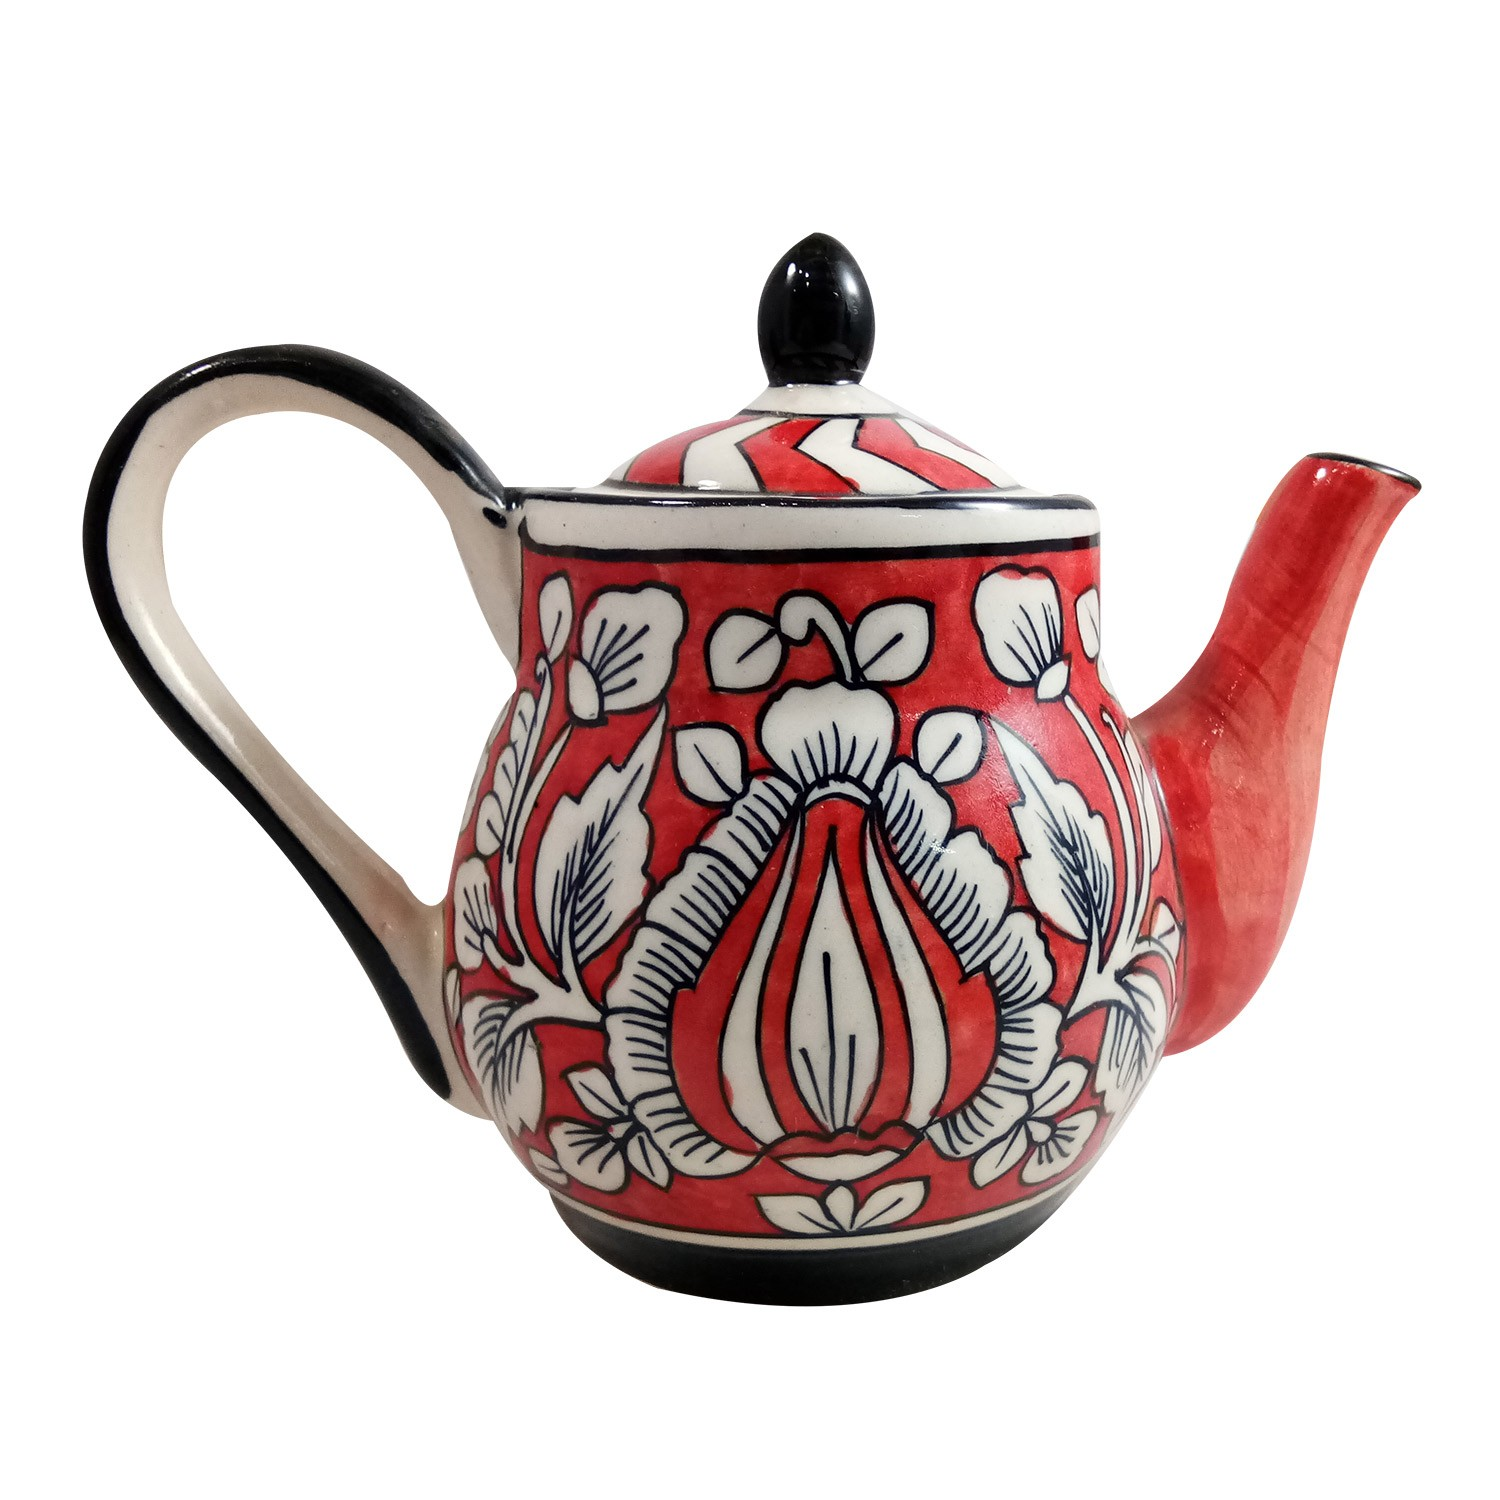 Exclusive Handmade Khurja Pottery Red, White & Black kettle by Awarded Artisans